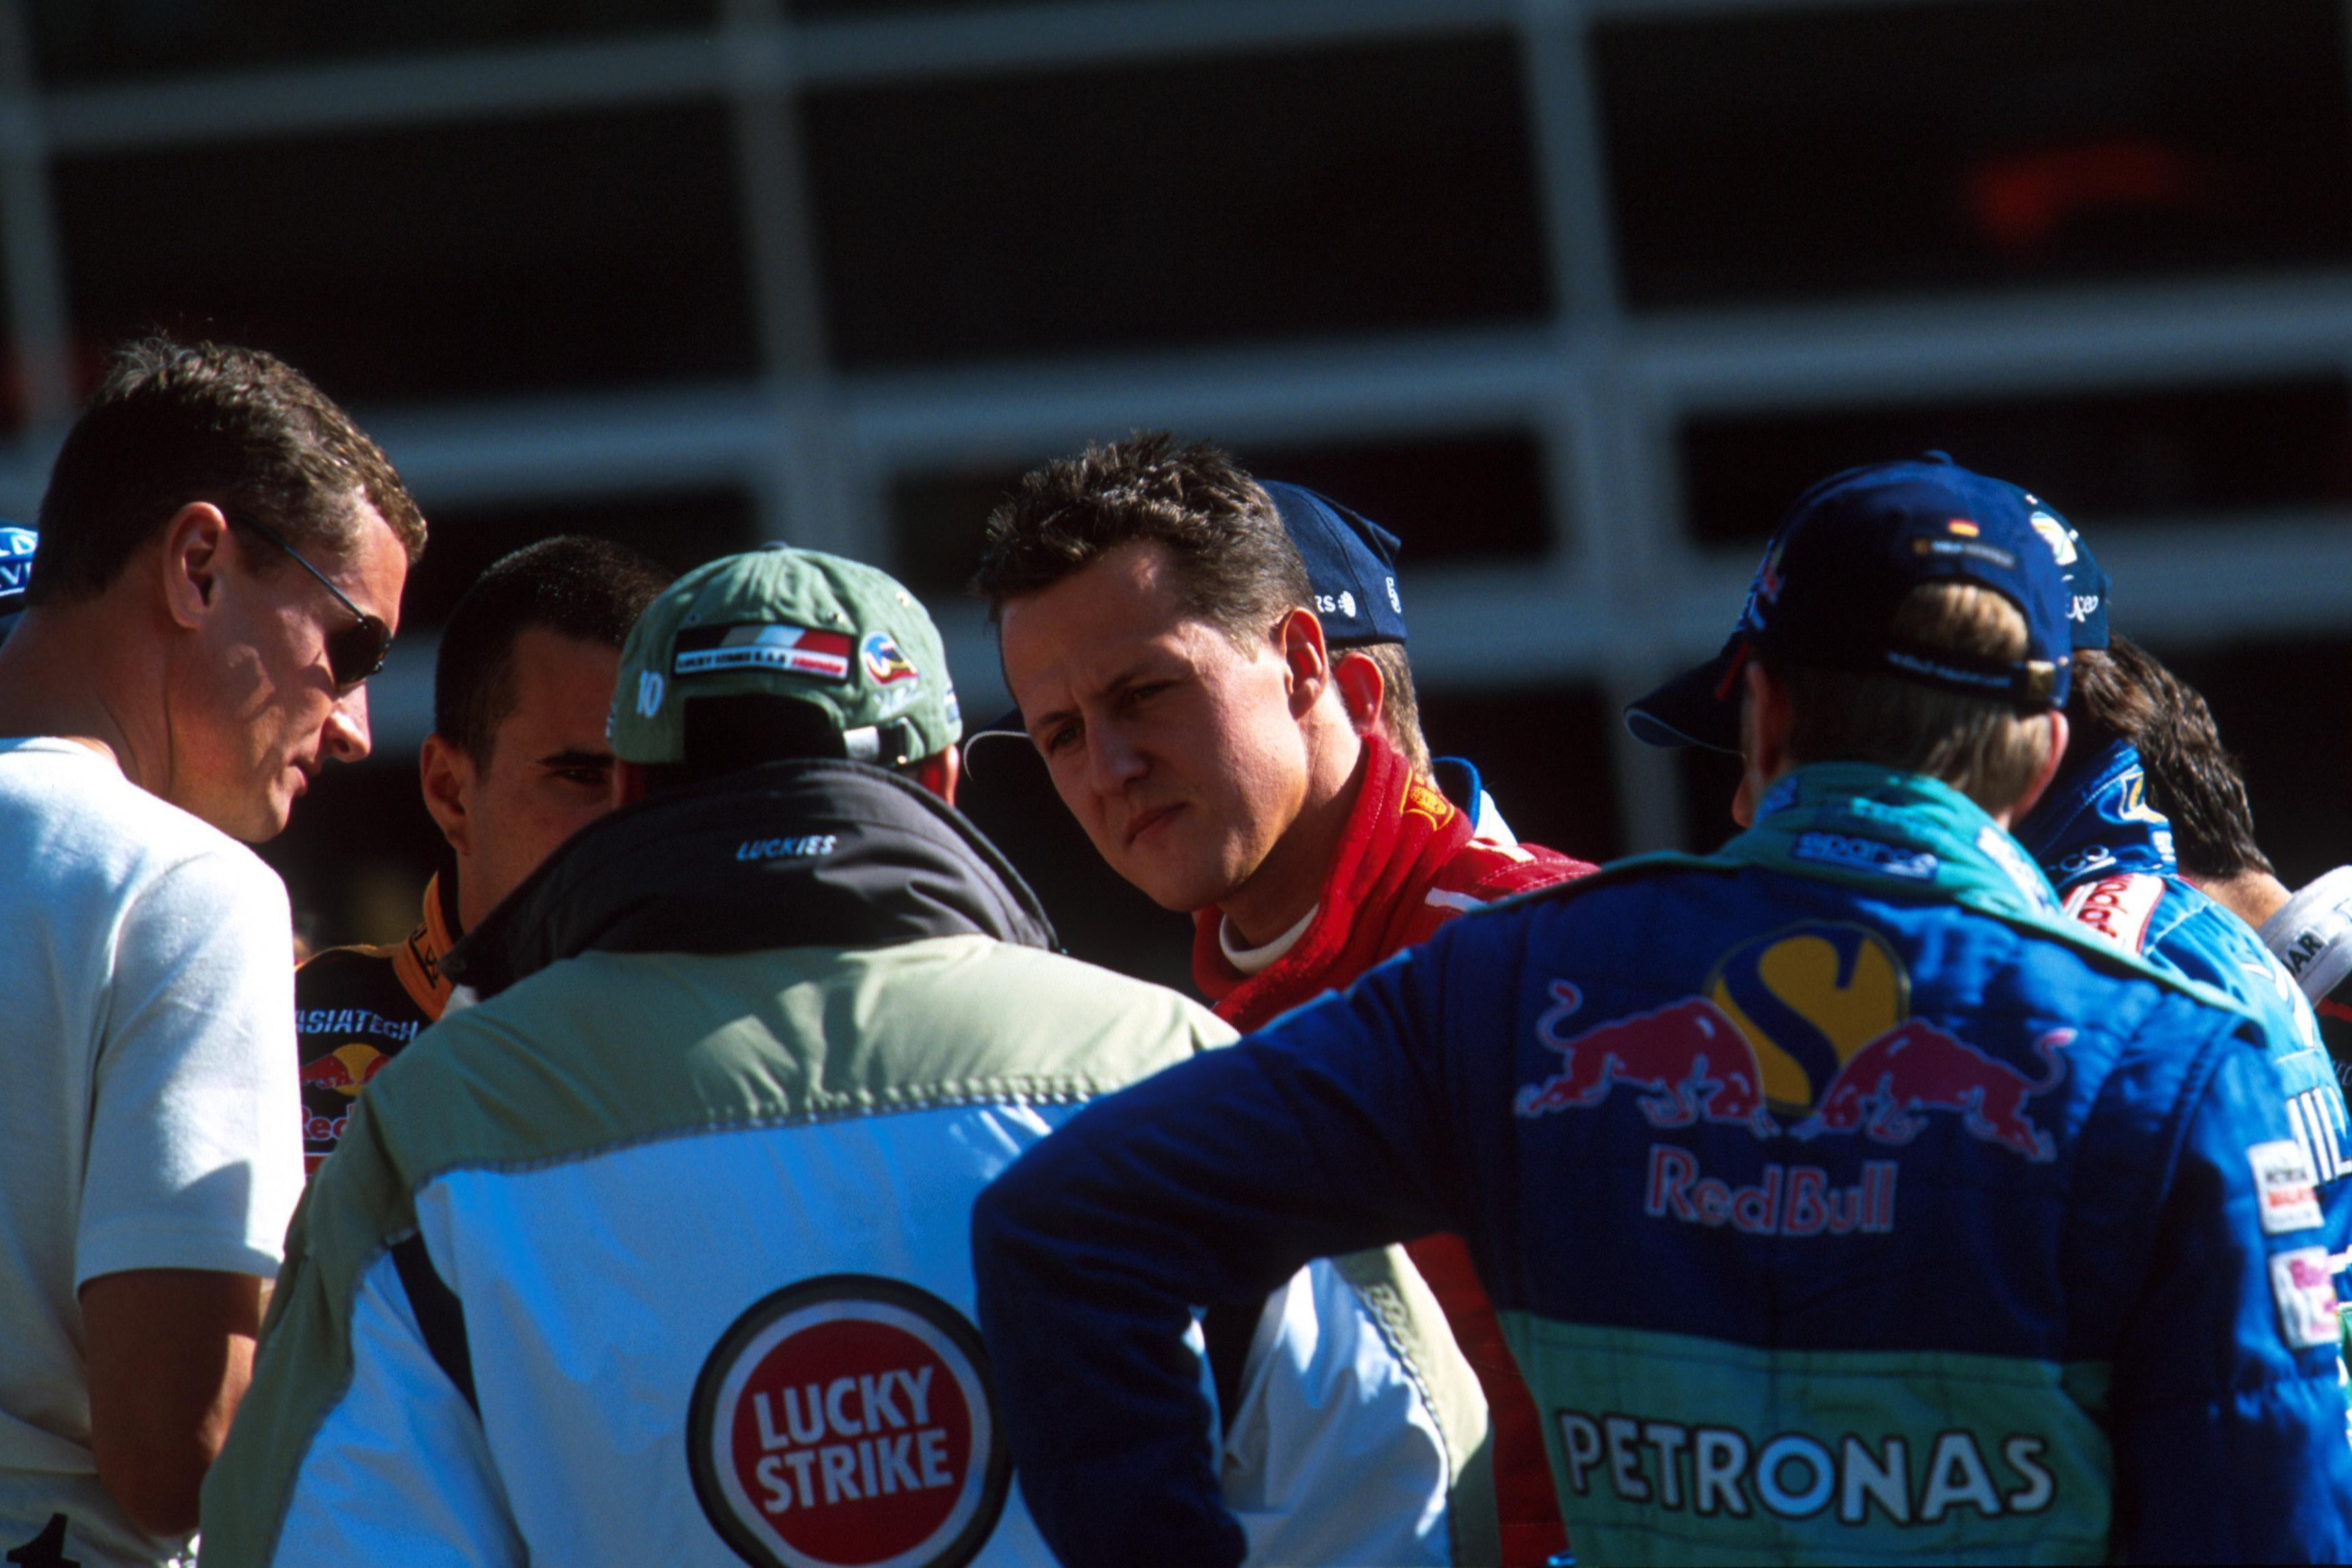 Schumacher attempted to corral the drivers into supporting his no passing motion, but met resistance from Villeneuve